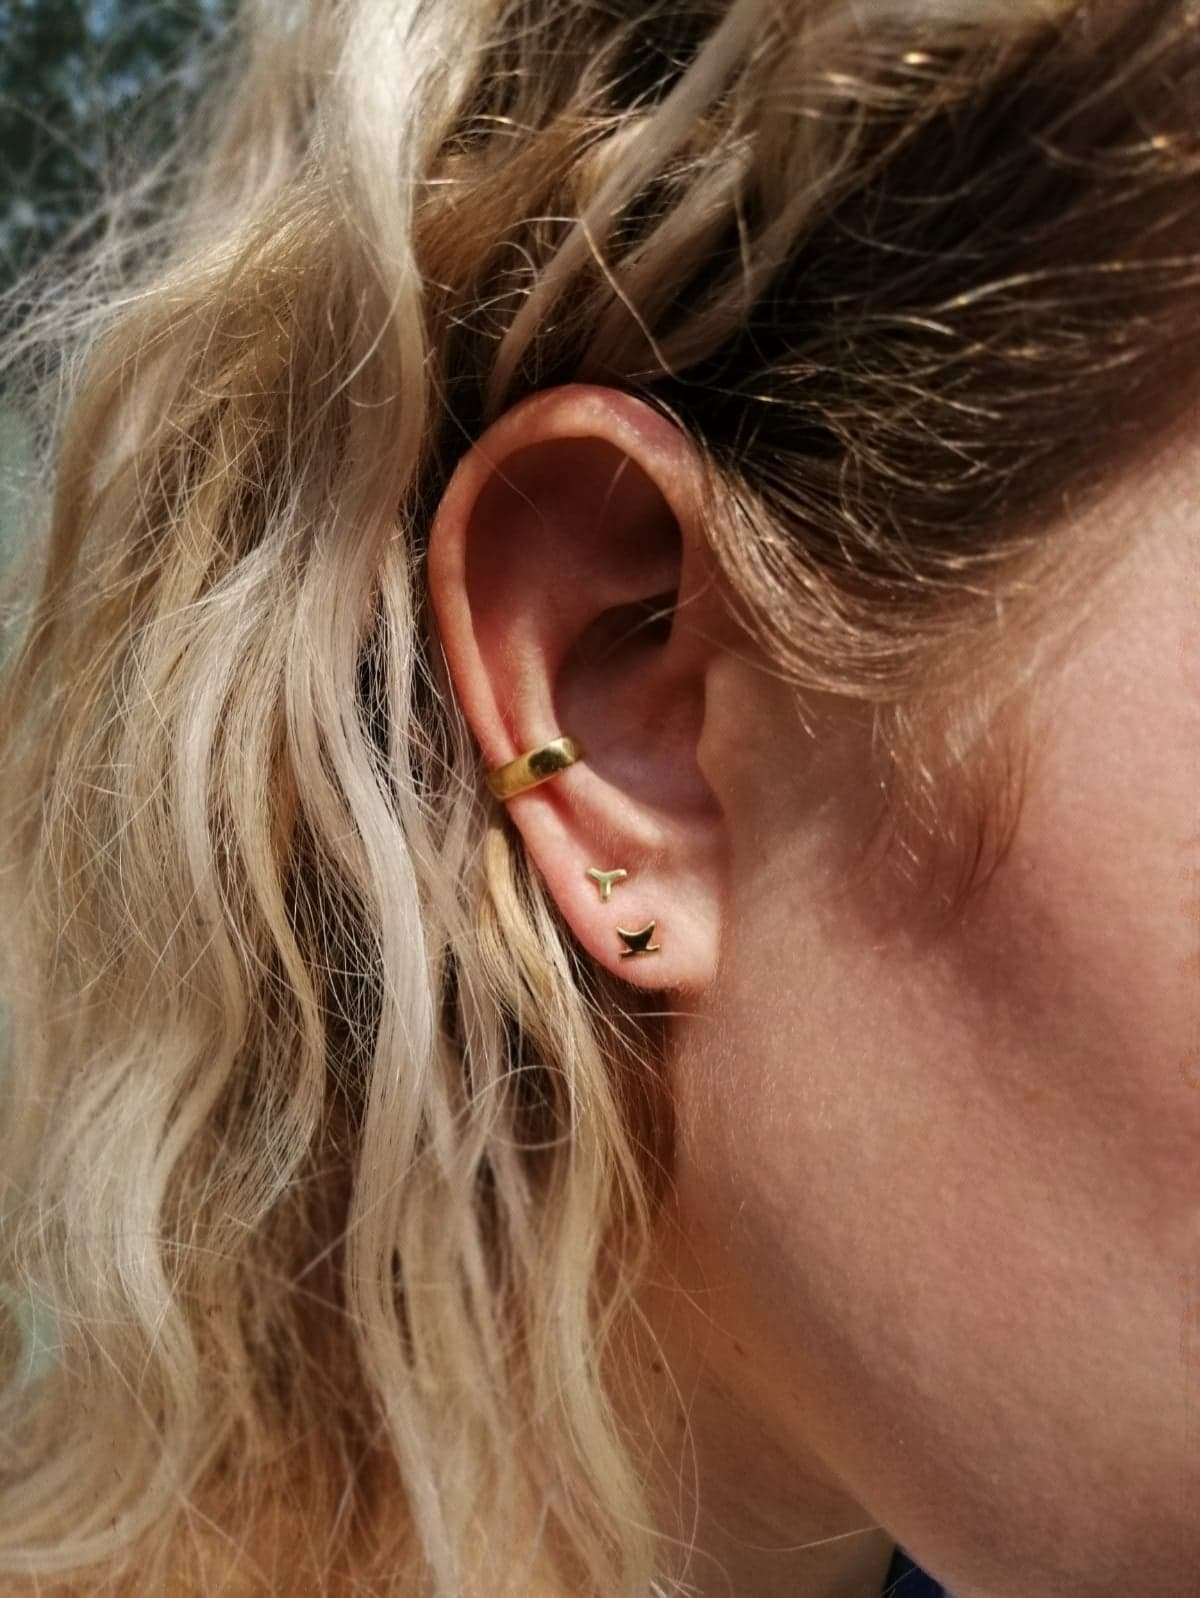 Ear Stud Gaelach Gold Plated